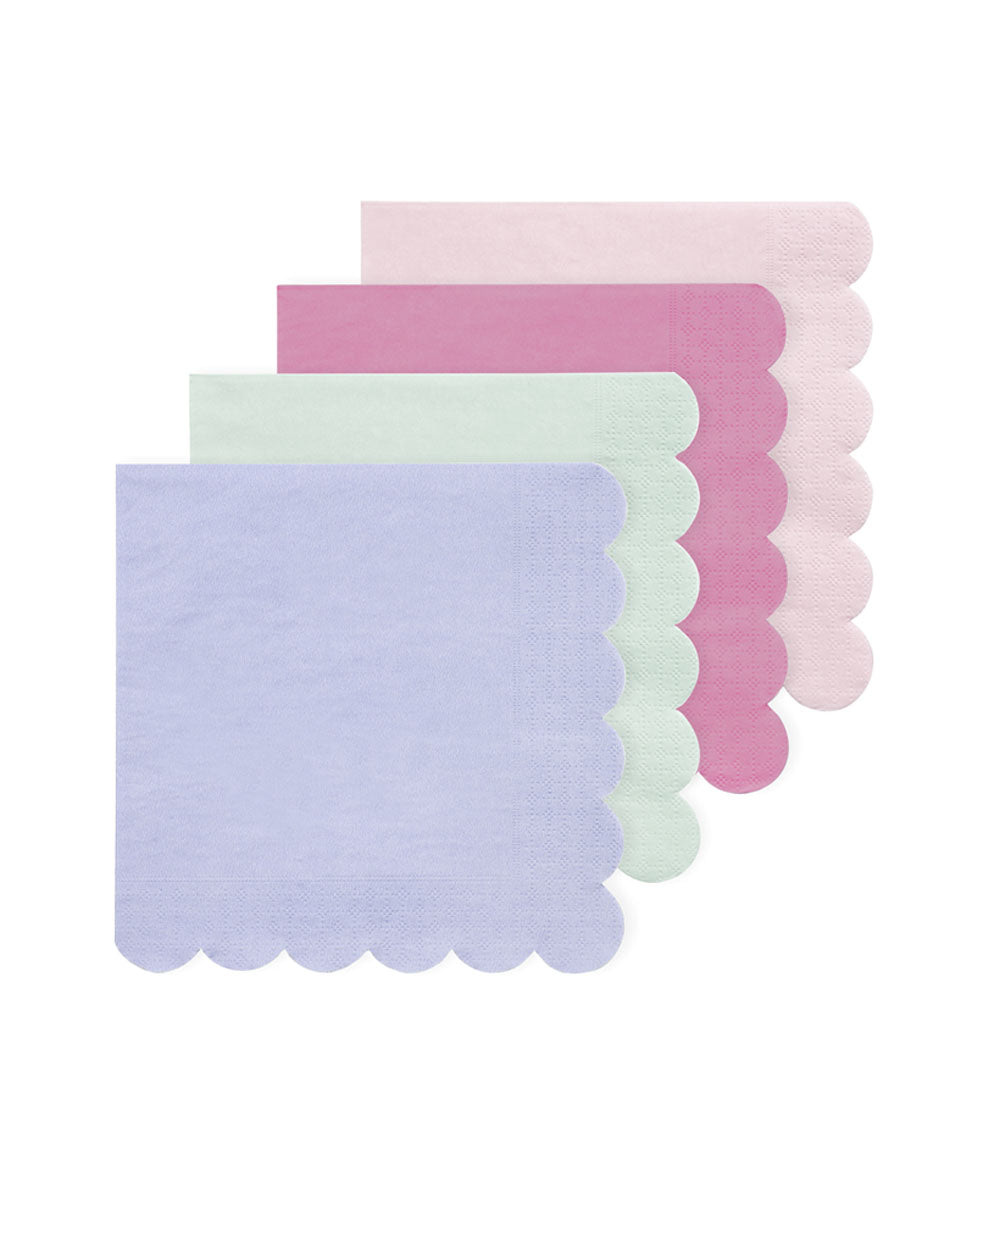 Multicolour Large Napkins